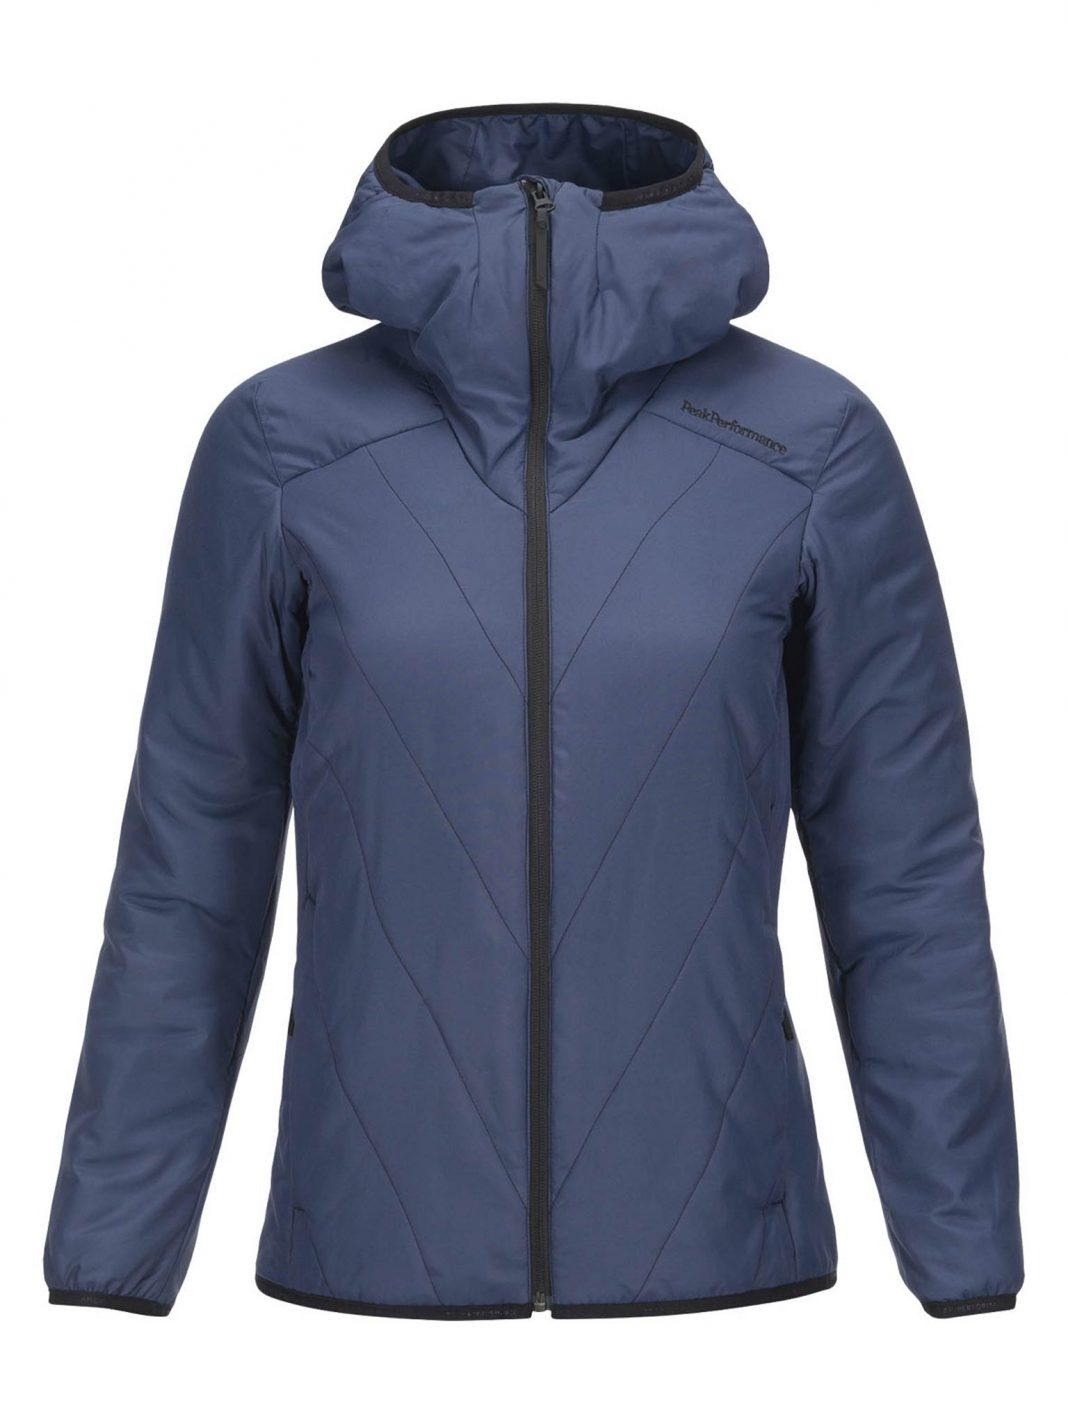 Peak Performance: W'S Pinneco Helo Spin Hooded Jacket 18/19